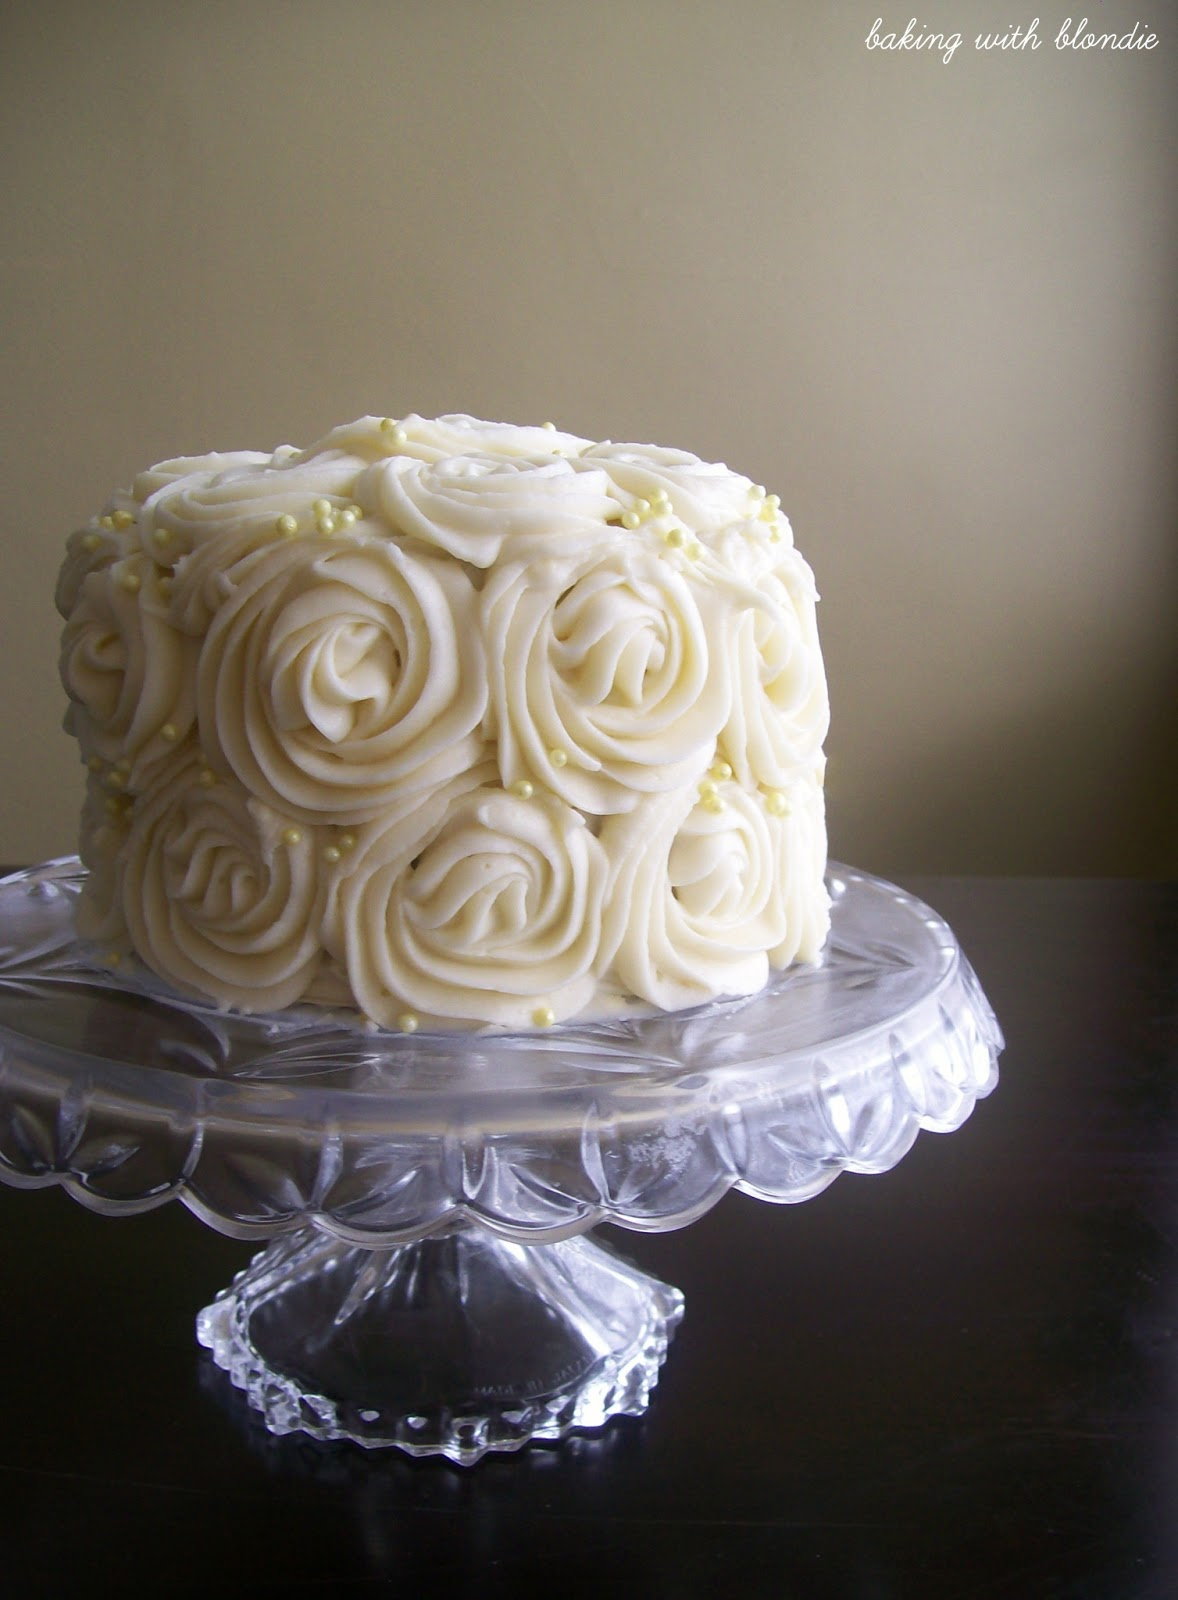 Almond Cream Cheese Frosted Rosette Cake